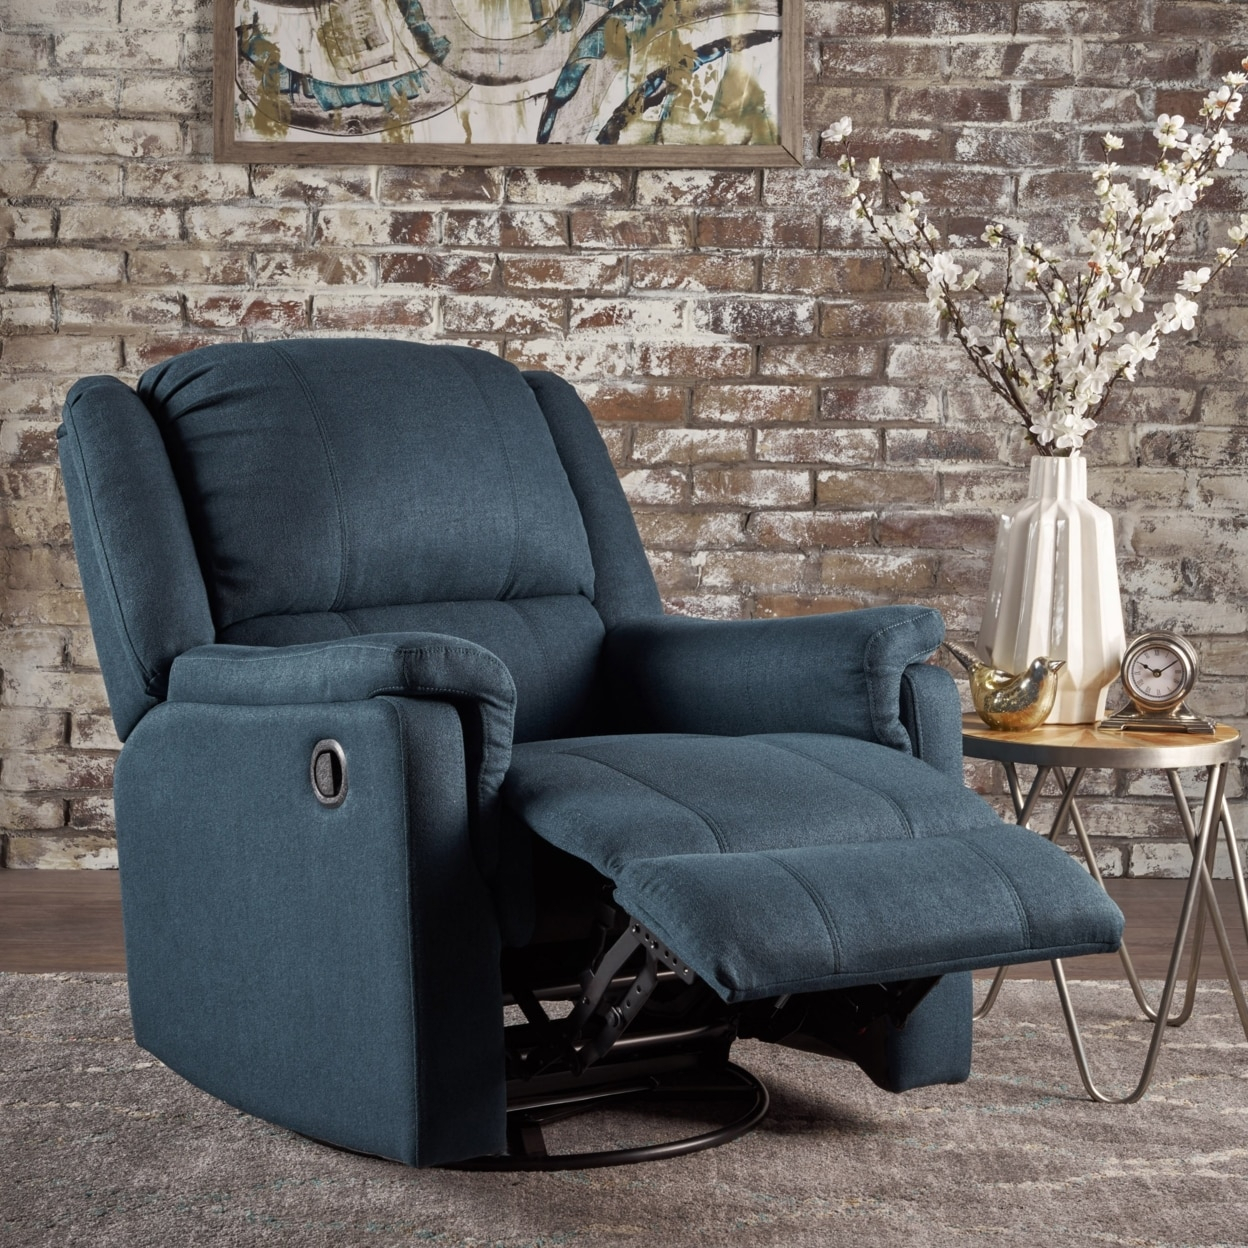 Jemma Tufted Fabric Swivel Gliding Recliner Chair-In Living Room with Franco Iii Fabric Swivel Rocker Recliners